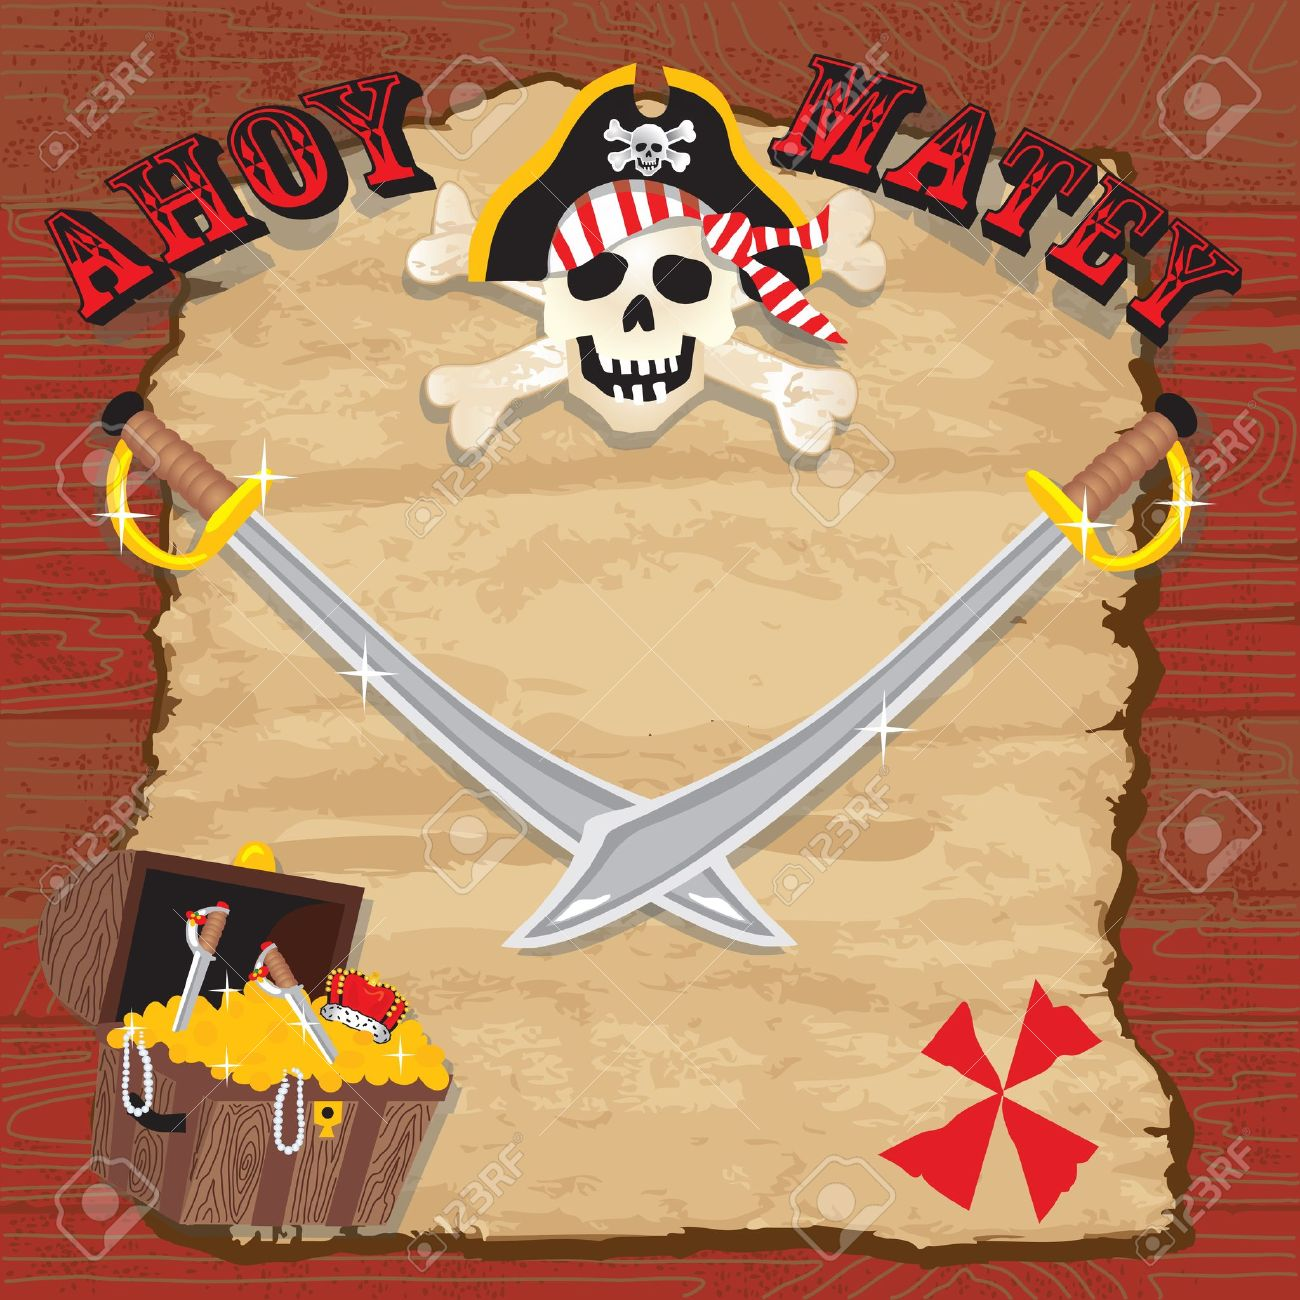 Pirate Party Invitation Rustic Red Plank Background With Old – Pirate Party Invites